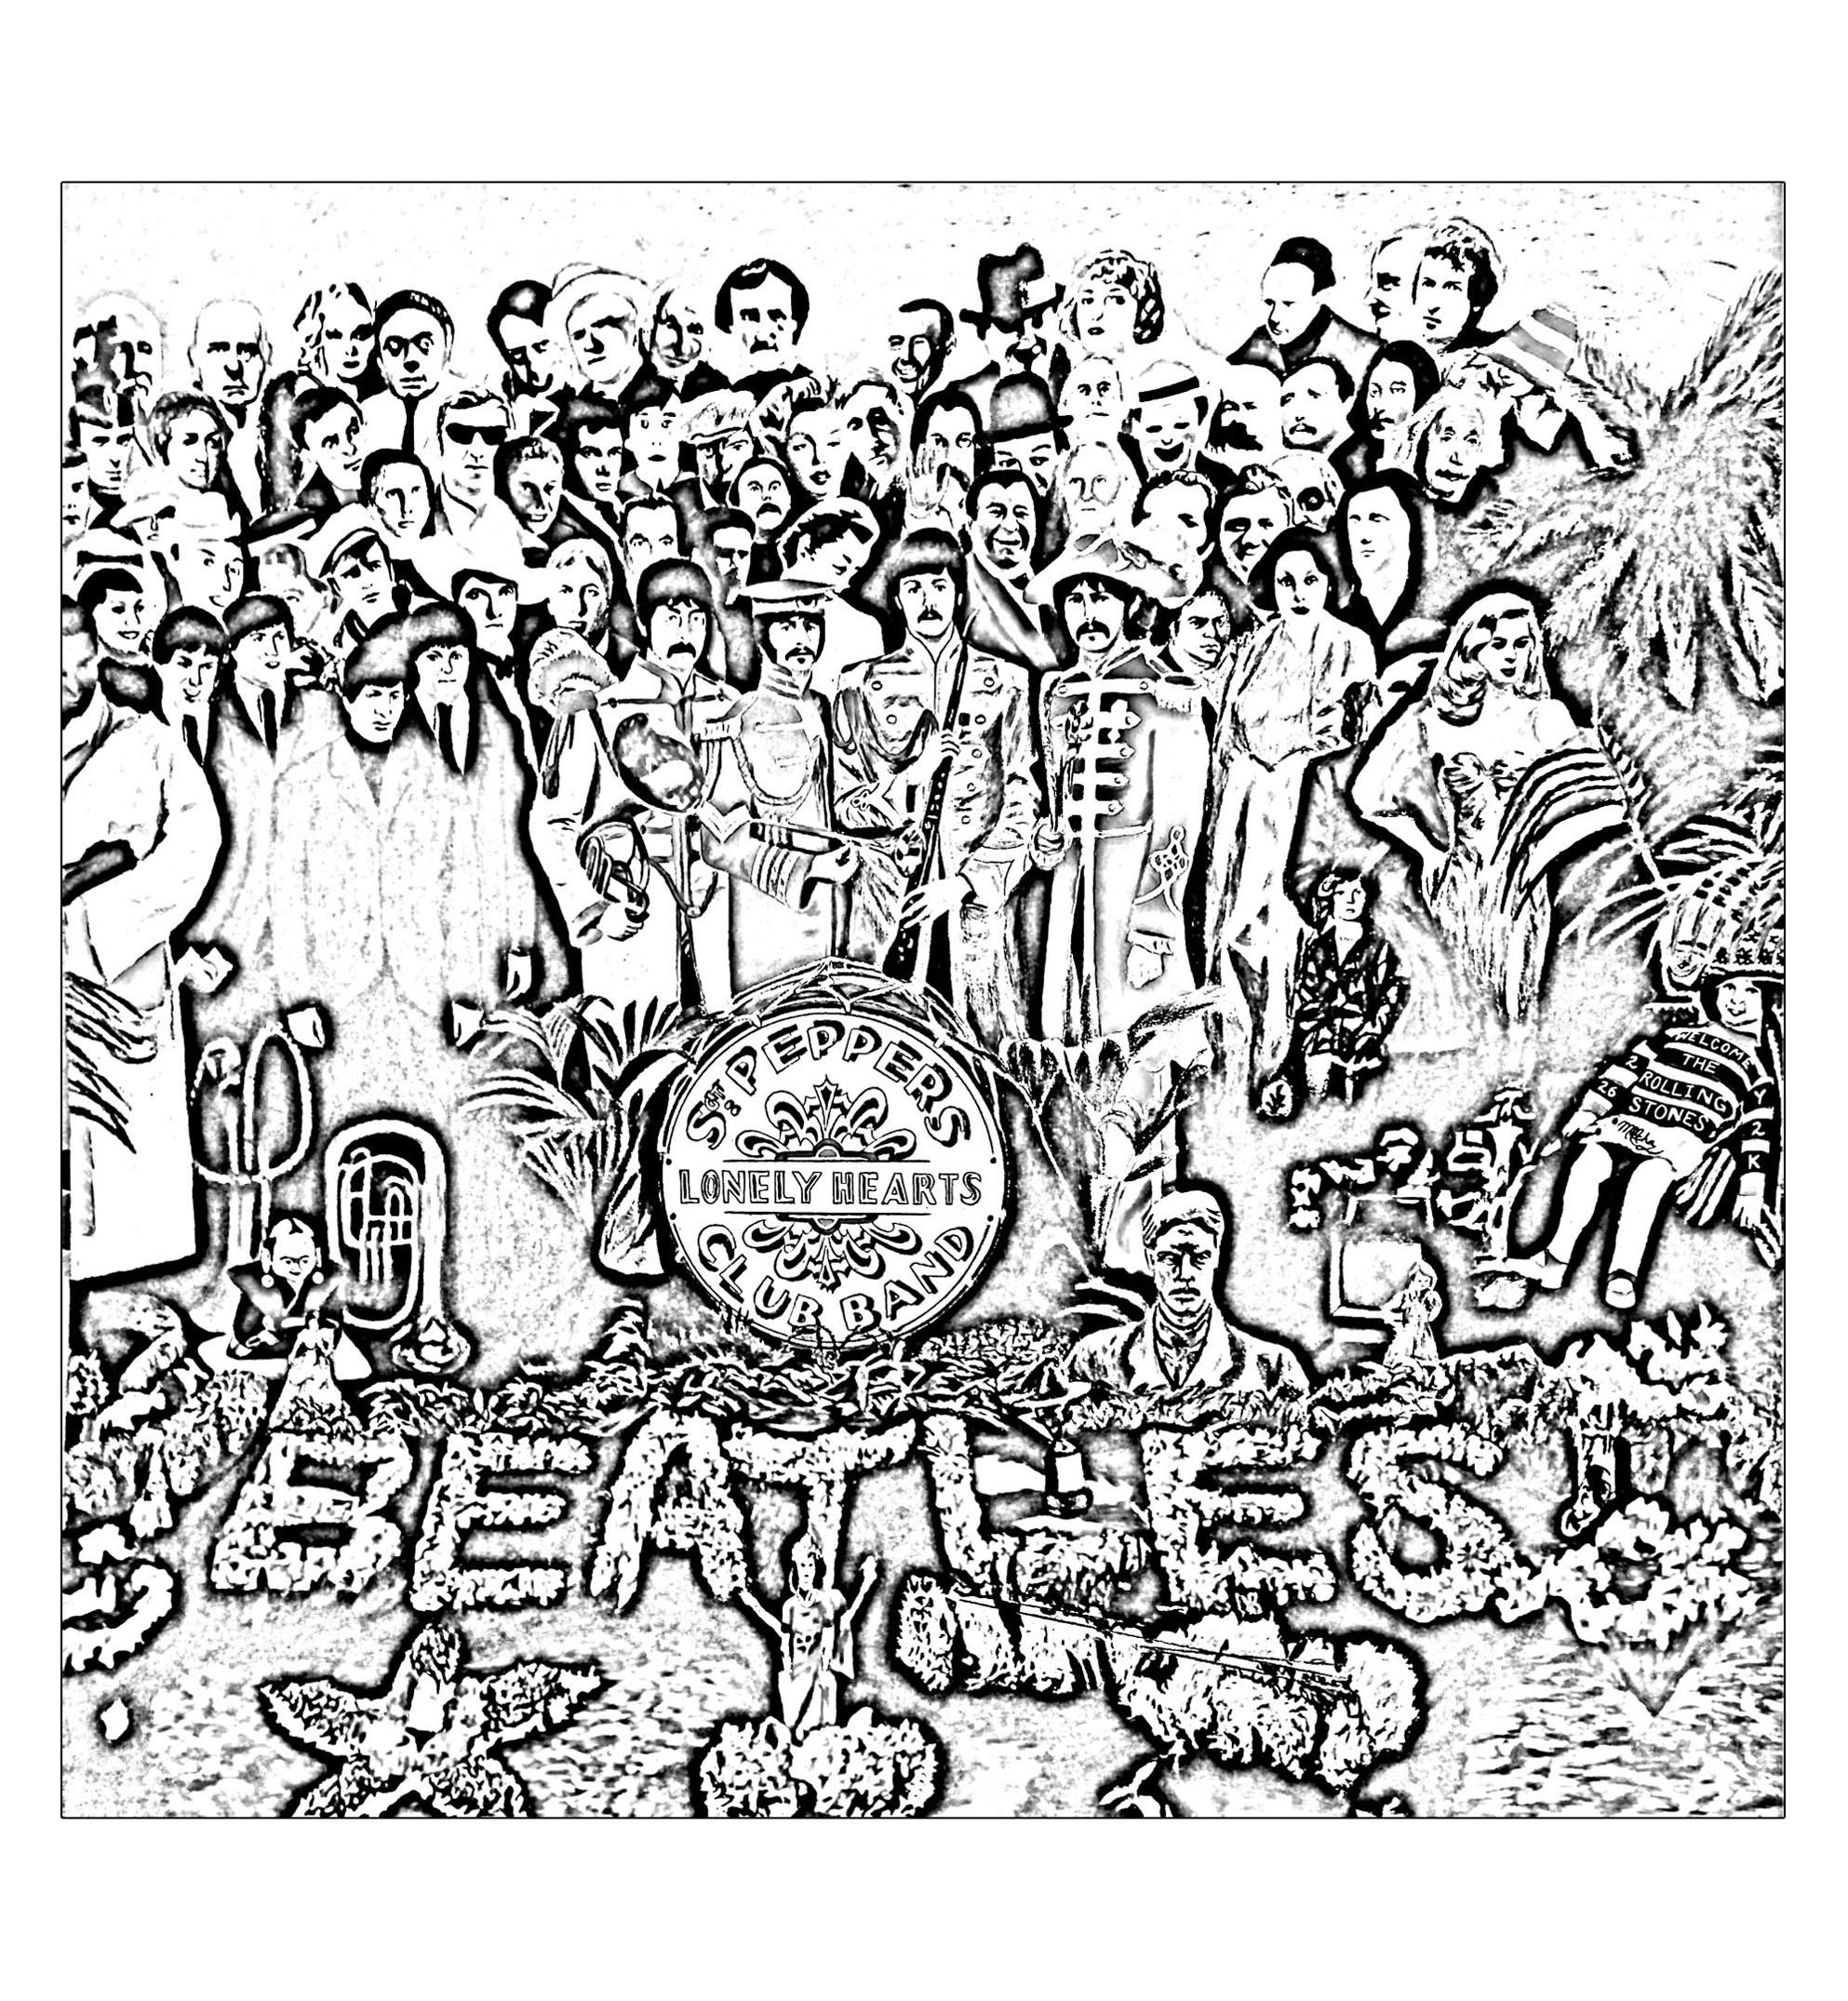 coloring music cover page the beatles sgt peppers lonely hearts club band cover coloring page music